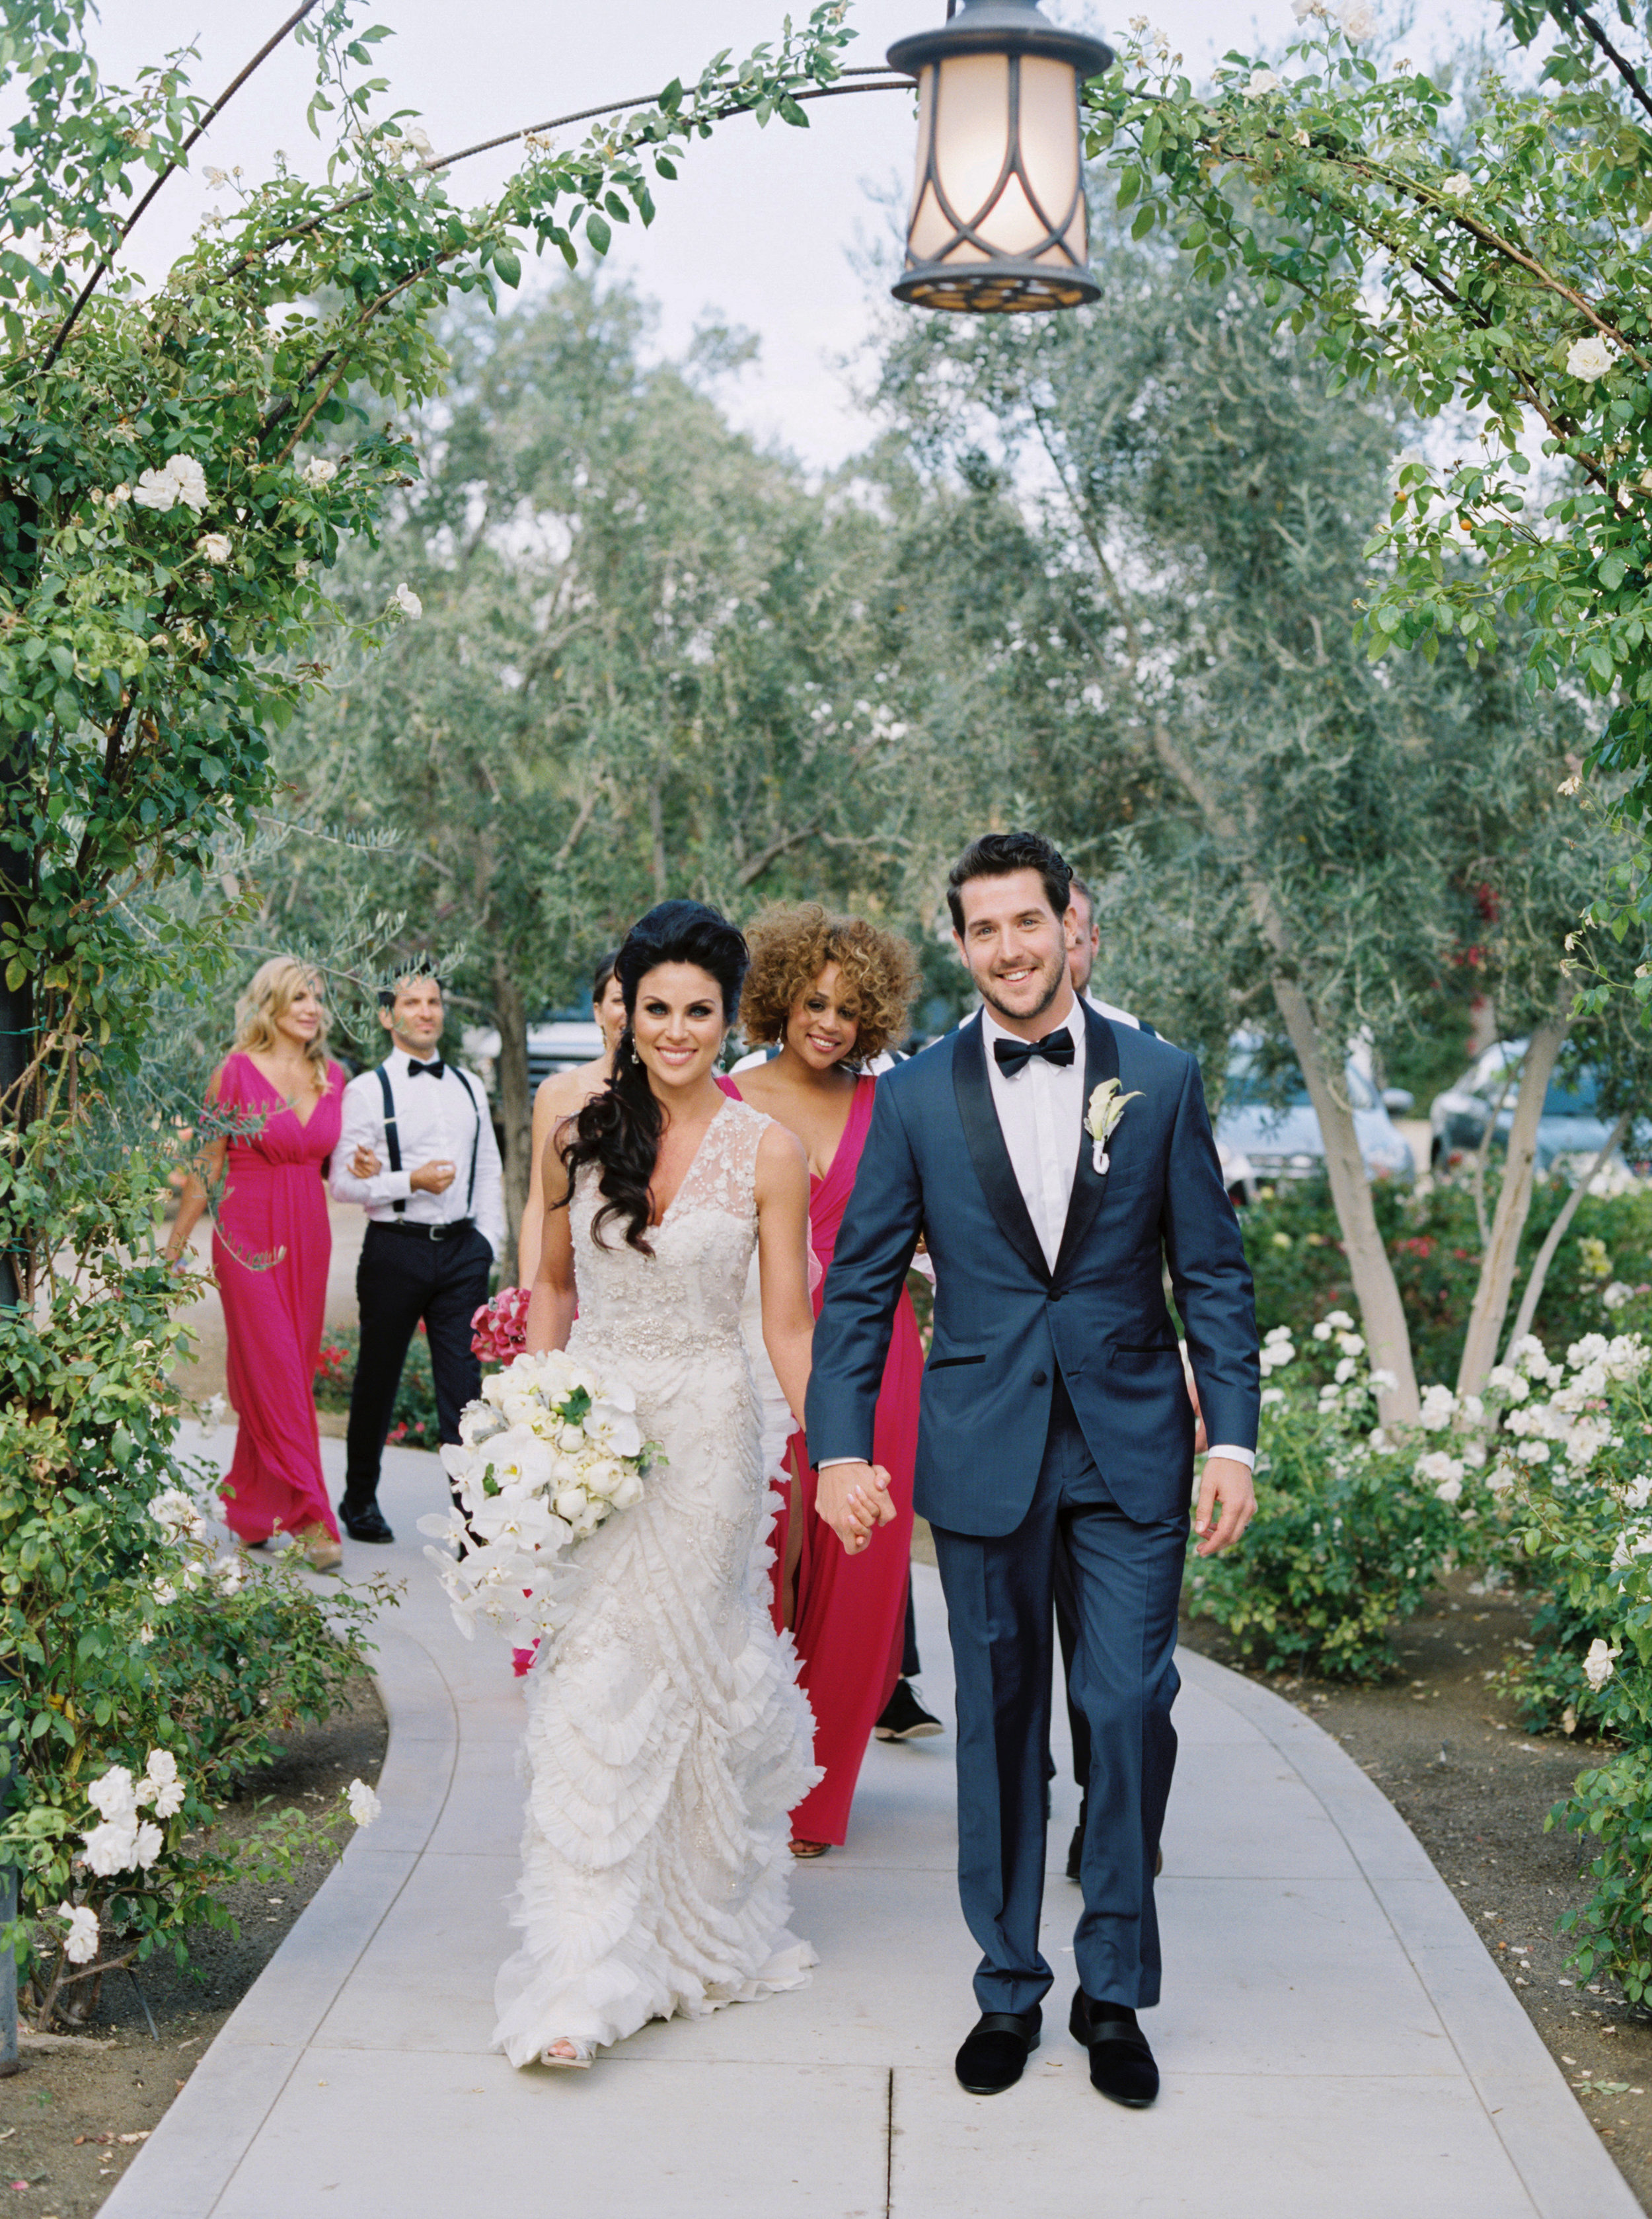 Grant & Natalia on Walkway.jpg